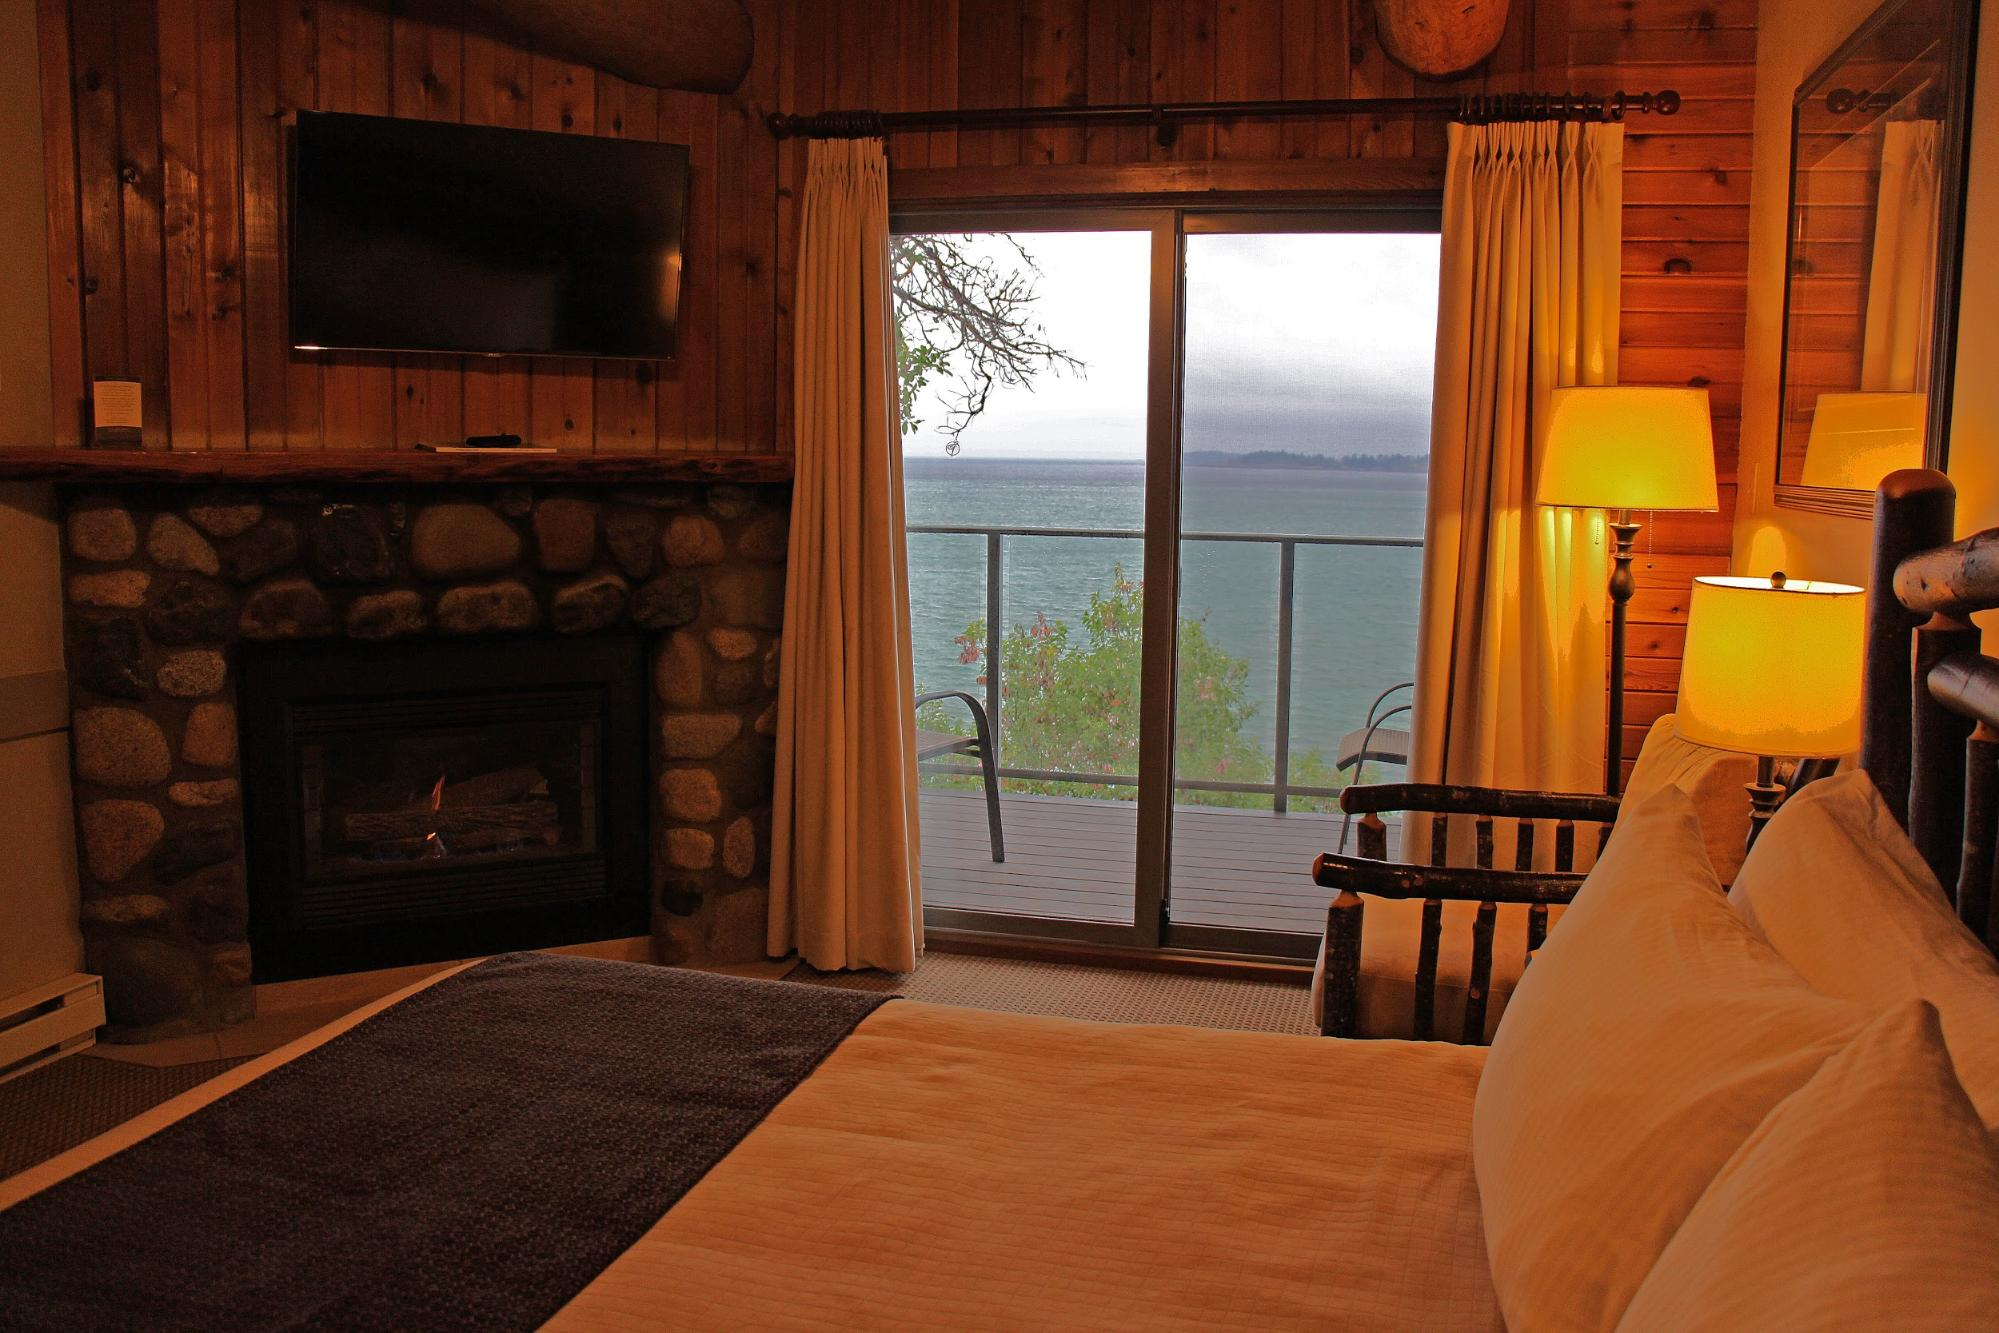 The cozy interior of a resort bedroom with a fireplace and private balcony overlooking the water.